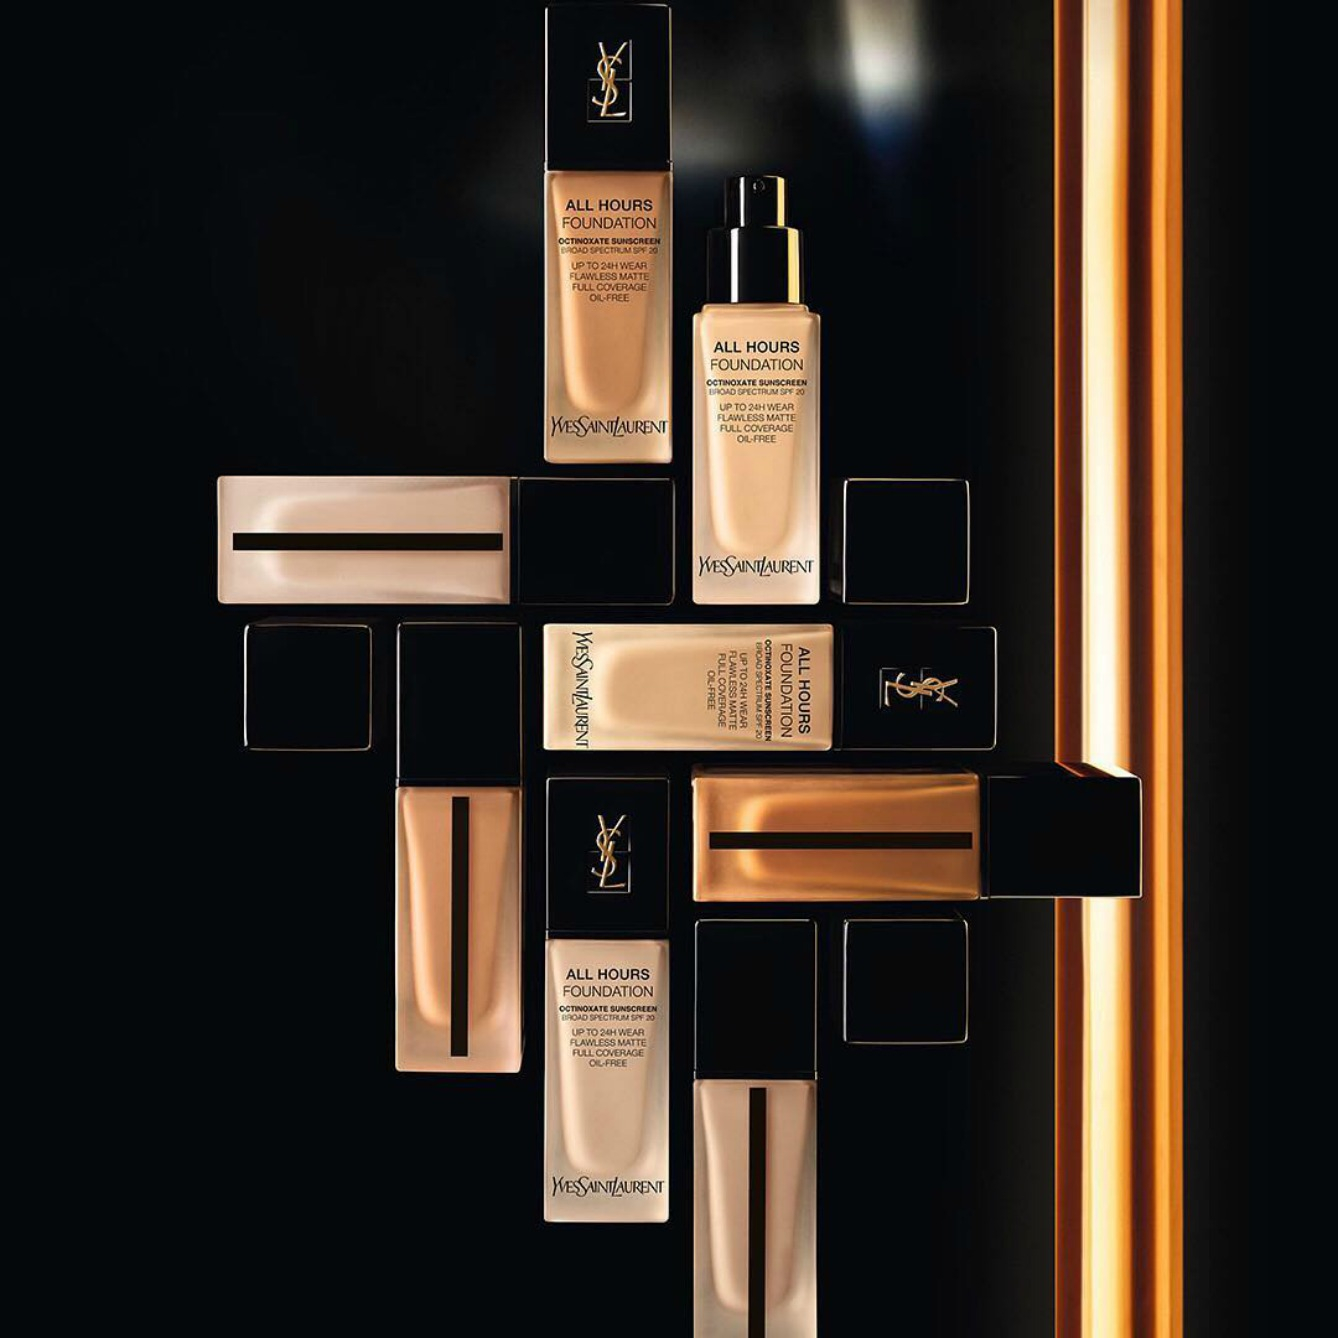 YSL Beauty Just Gave Us Two More Reasons to Love the Brand